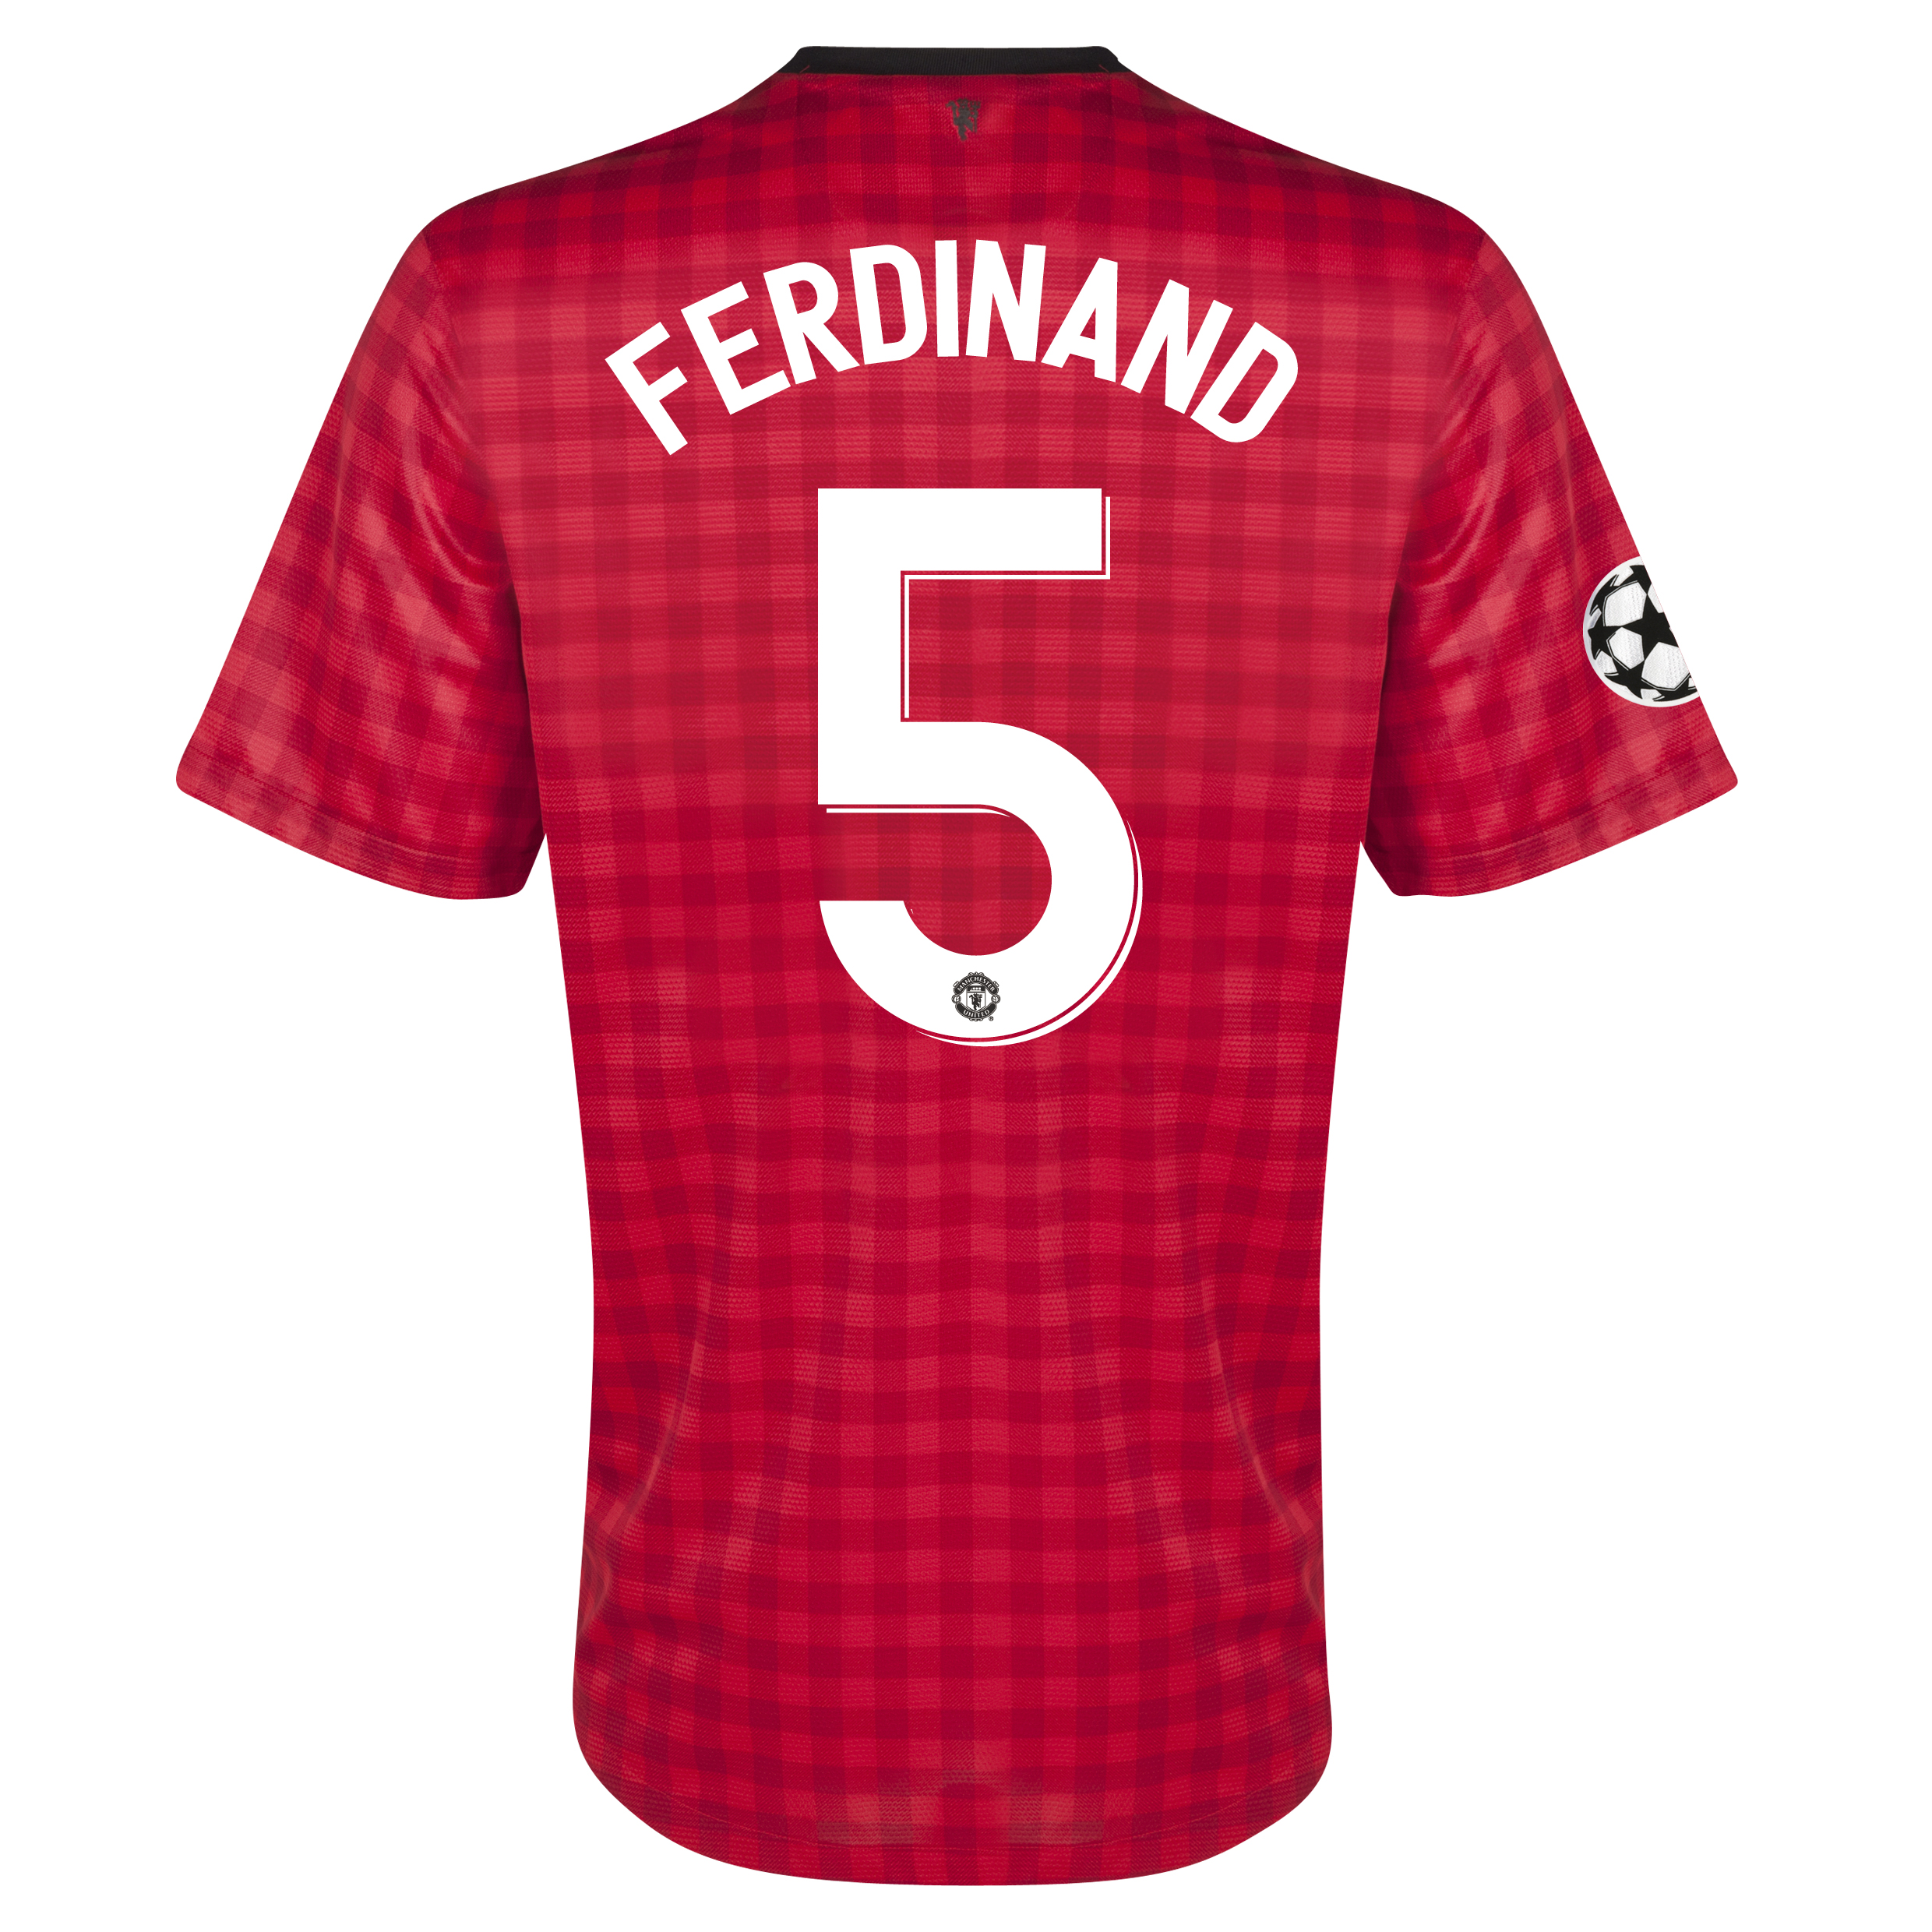 Manchester United UEFA Champions League Home Shirt 2012/13 with Ferdinand 5 printing